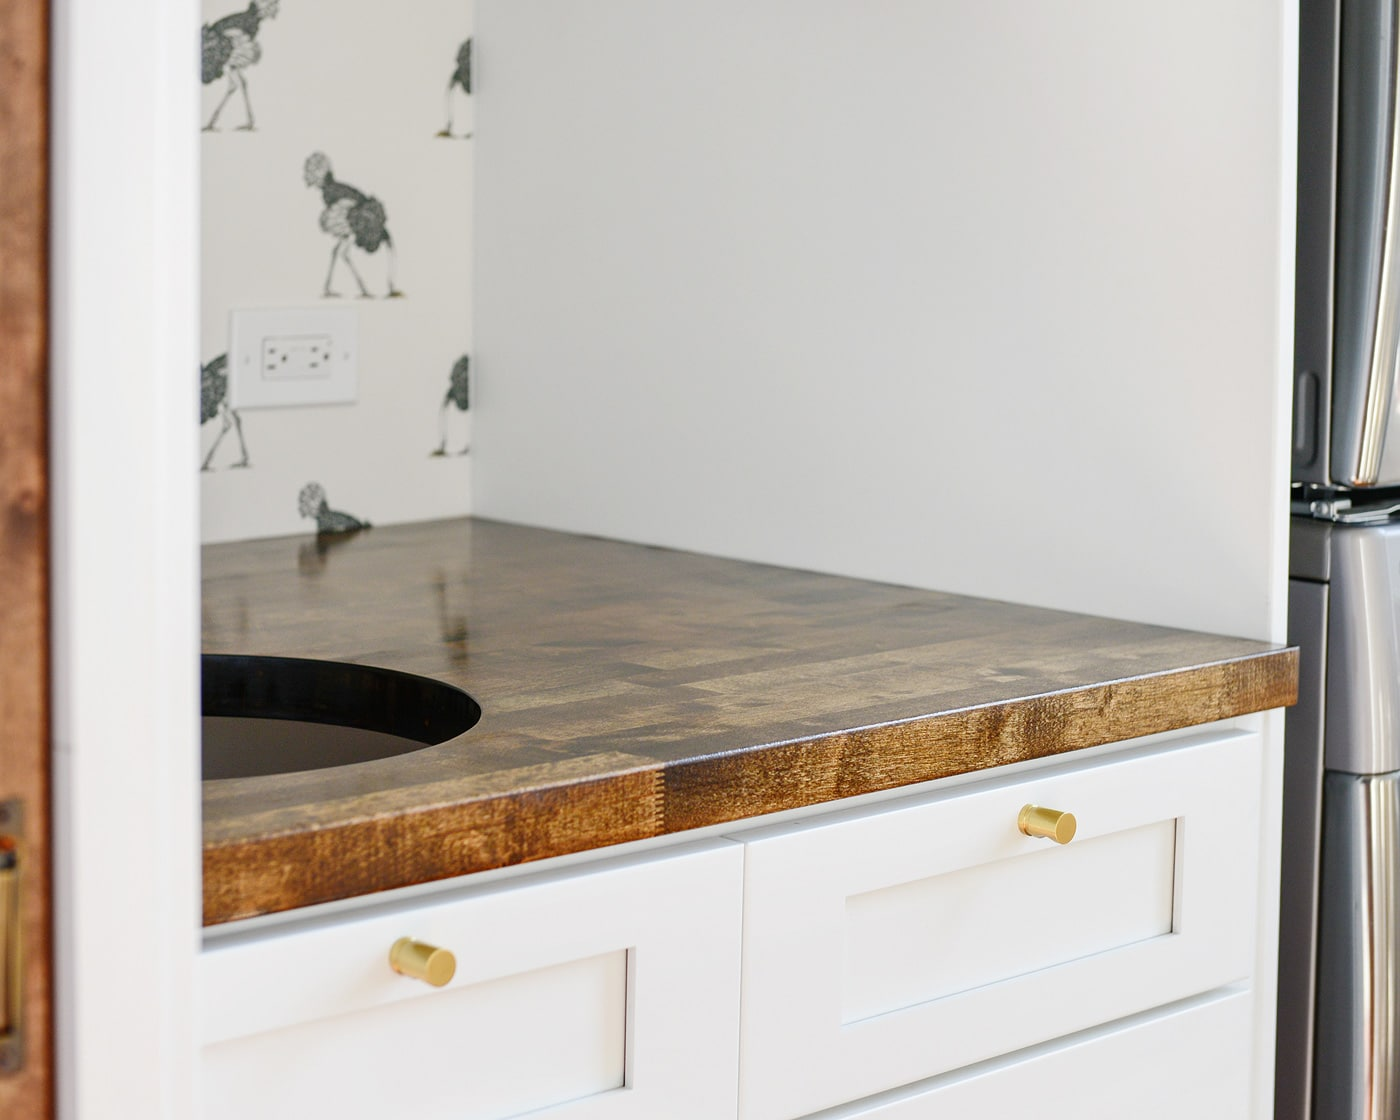 Butcher Block Counter Installation 18